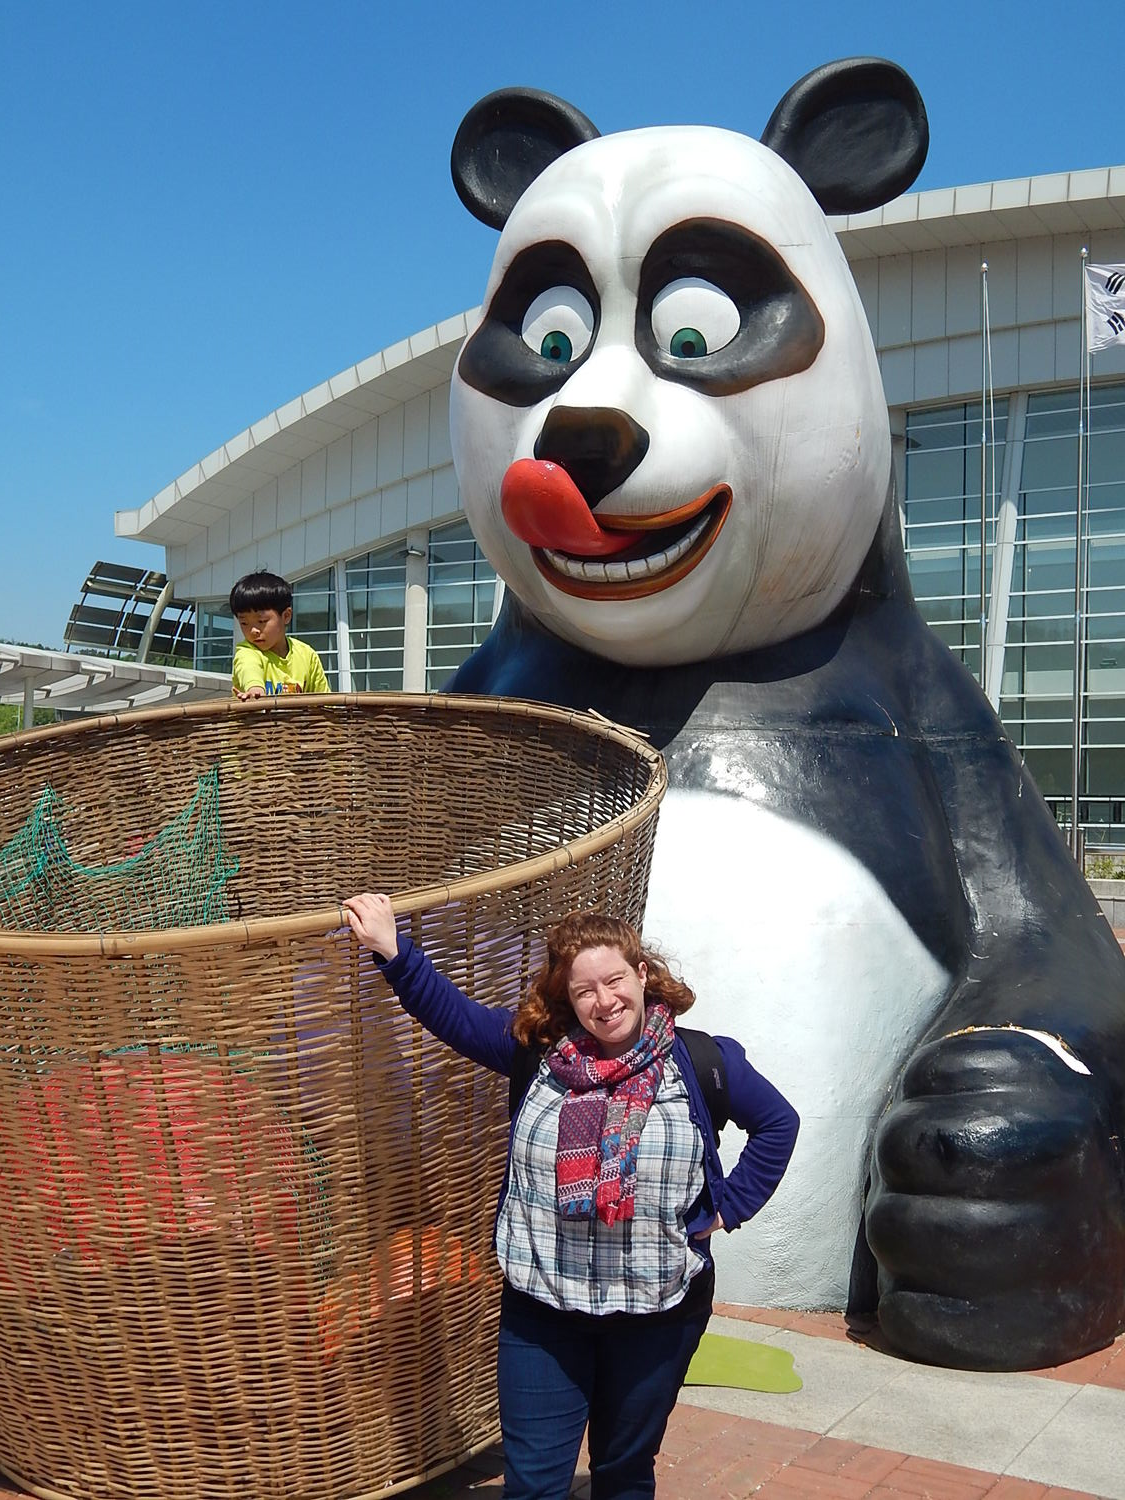 Sadly, the only pandas I saw were all fake.